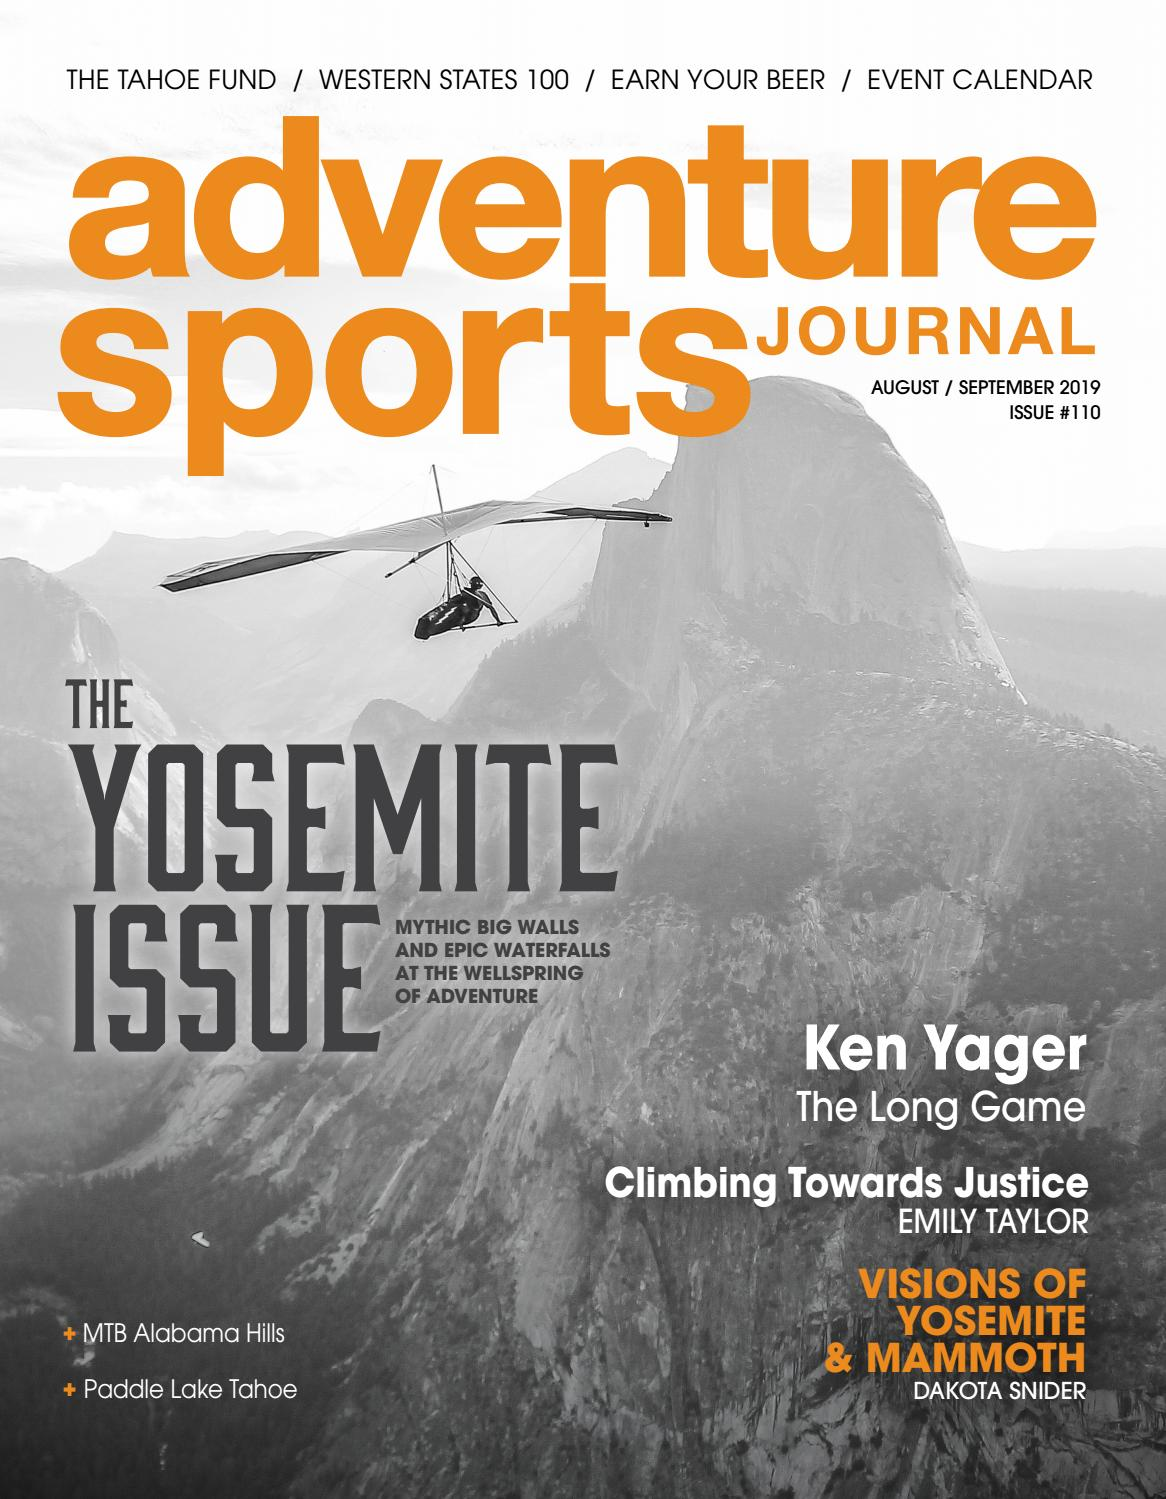 Adventure Sports Journal // Aug/Sept 2019 // #110 by